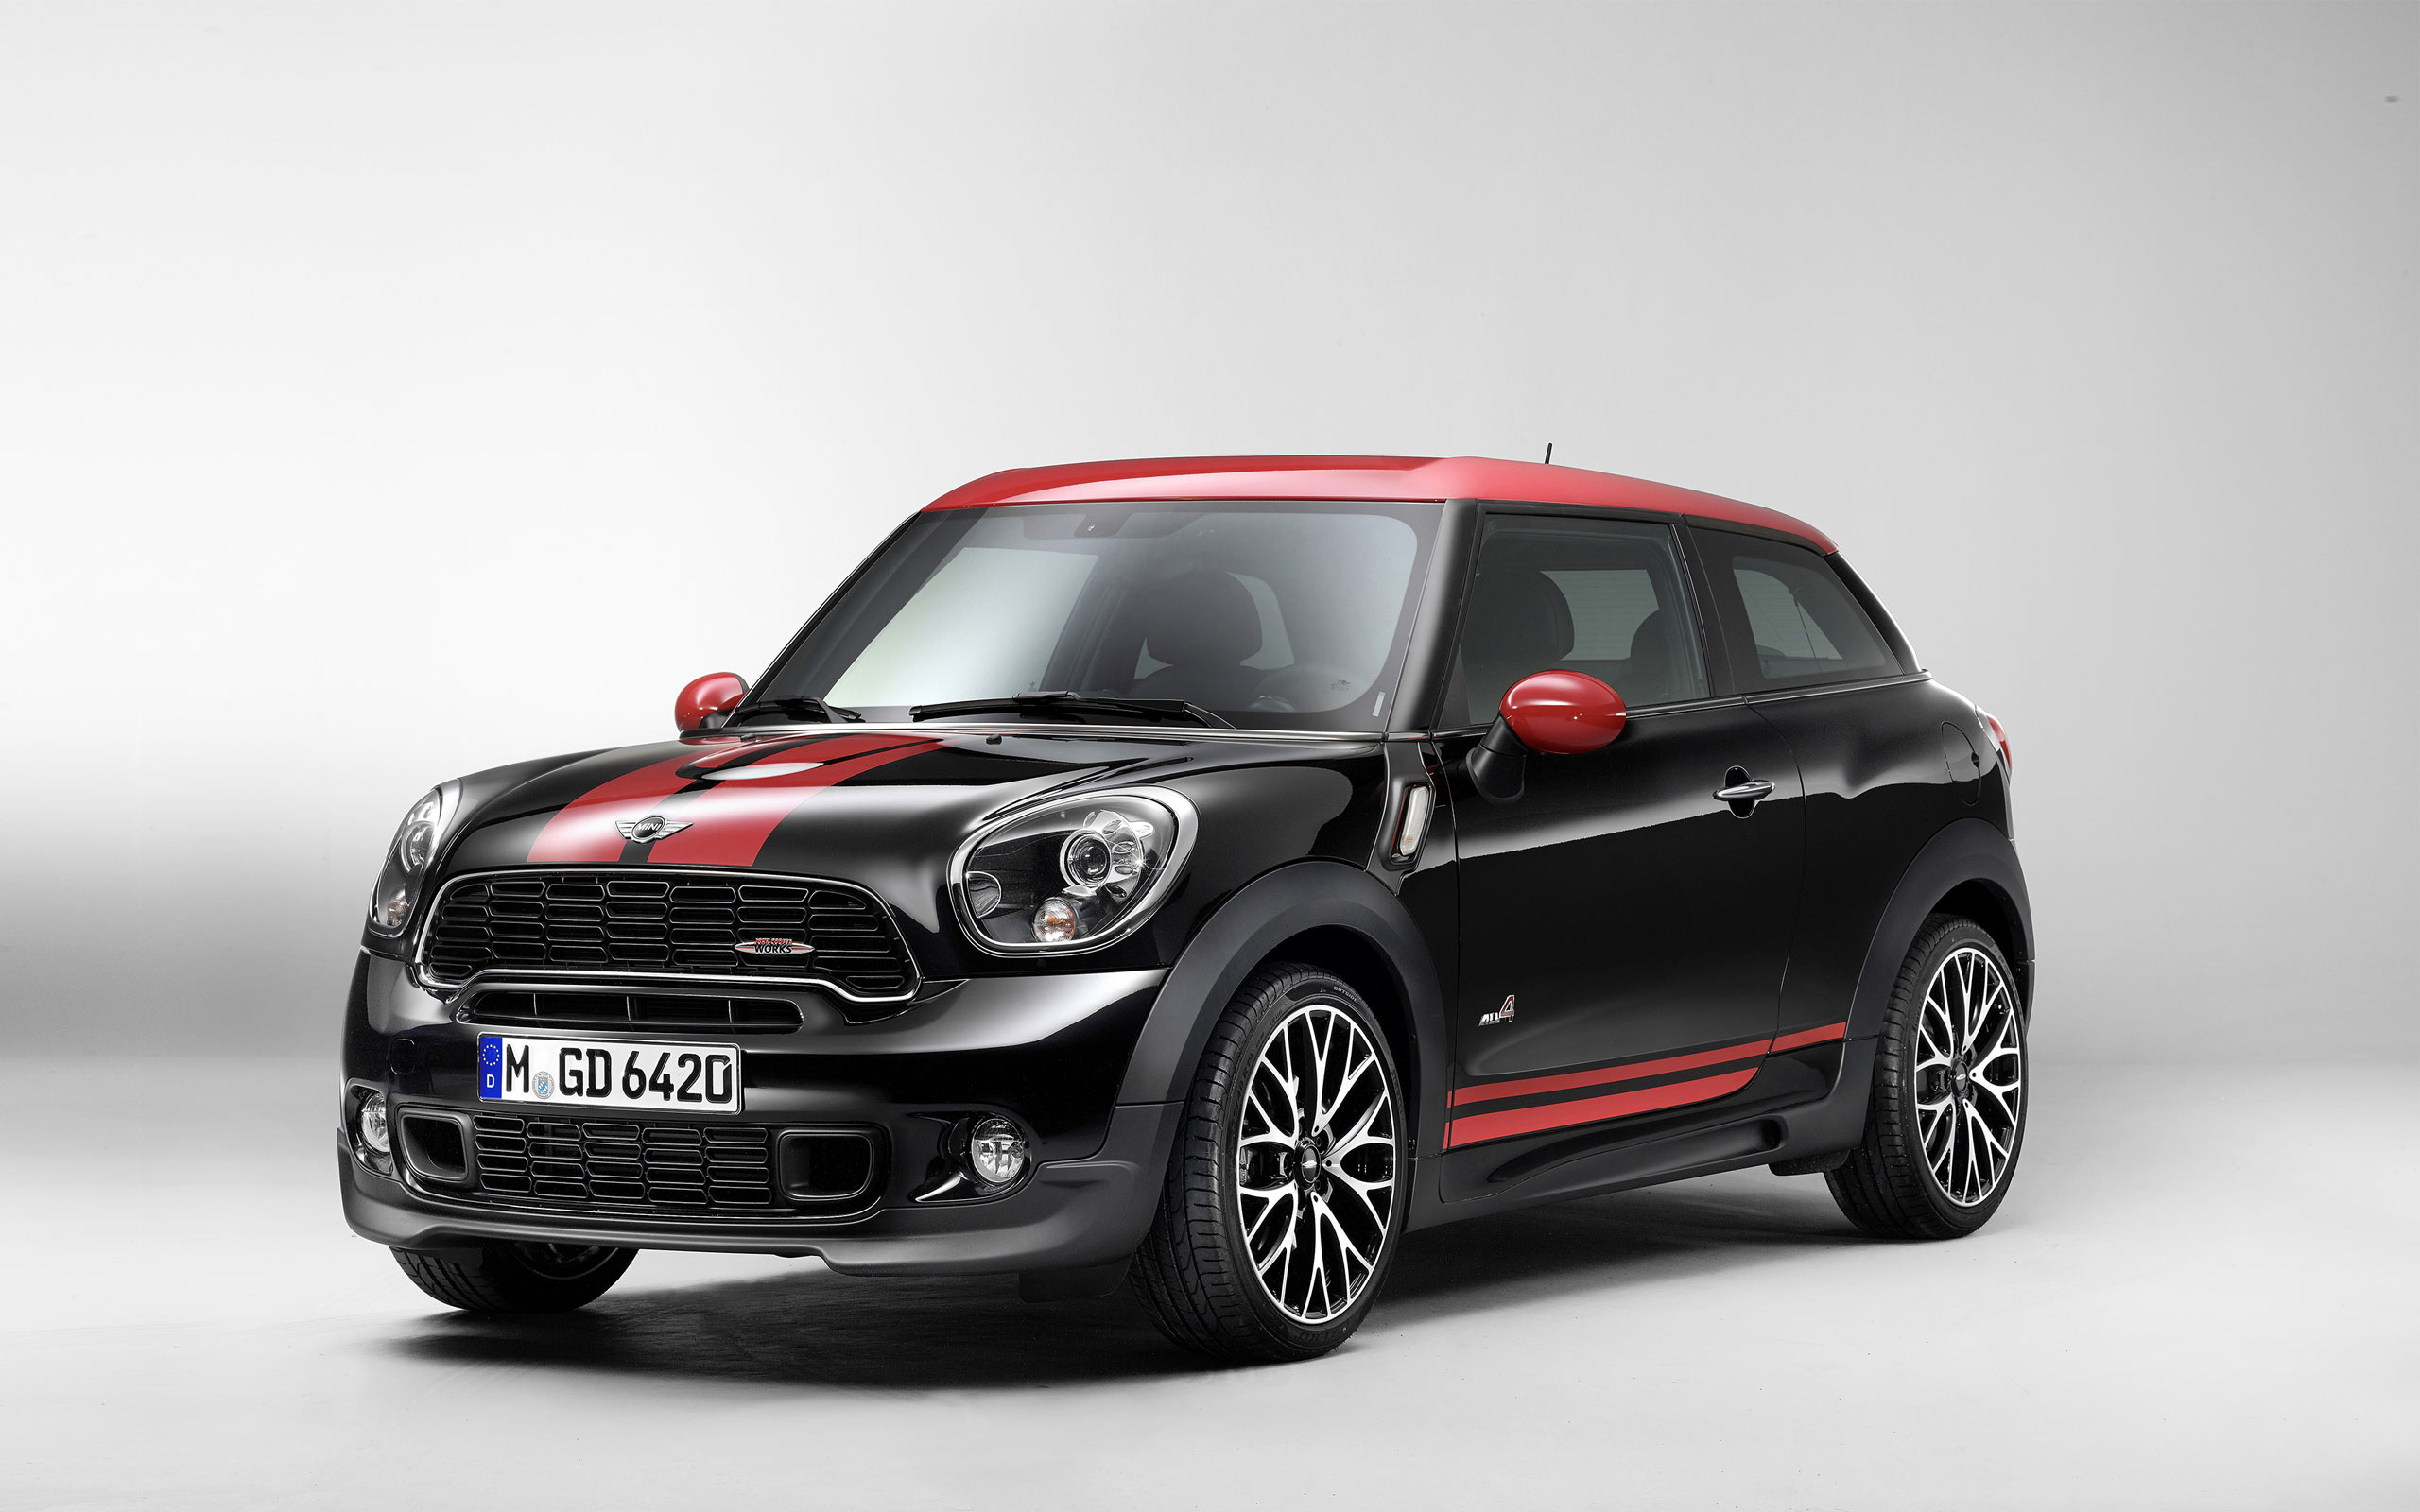 2014 Mini John Cooper Works Paceman Wallpaper HD Car Wallpapers 2560x1600